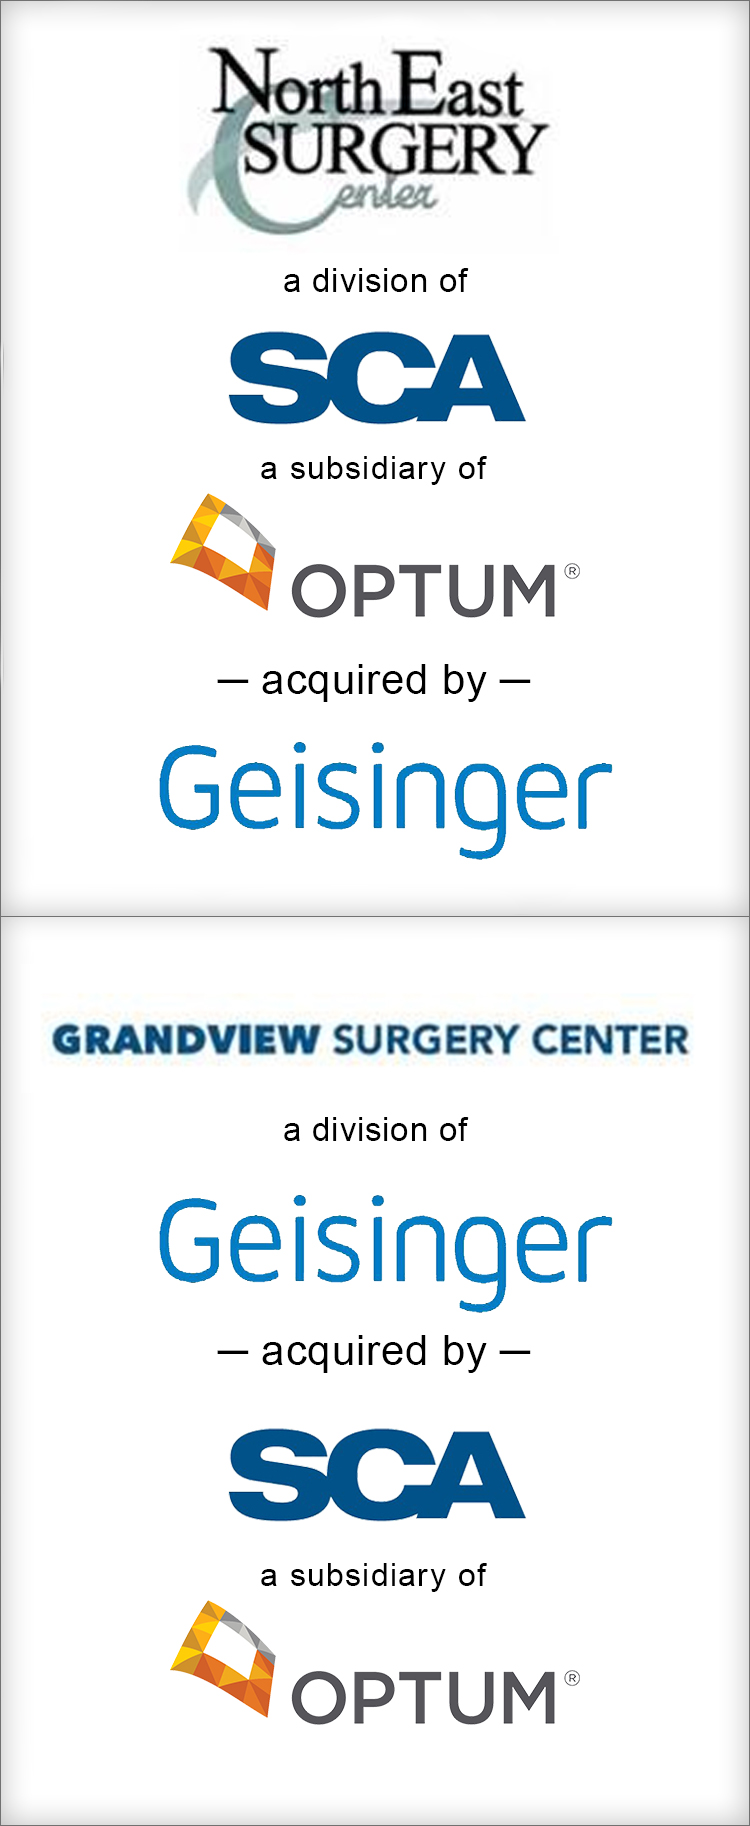 Image for BGL Announces the Simultaneous Recapitalizations of Grandview Surgery Center and North East Surgery Center Press Release